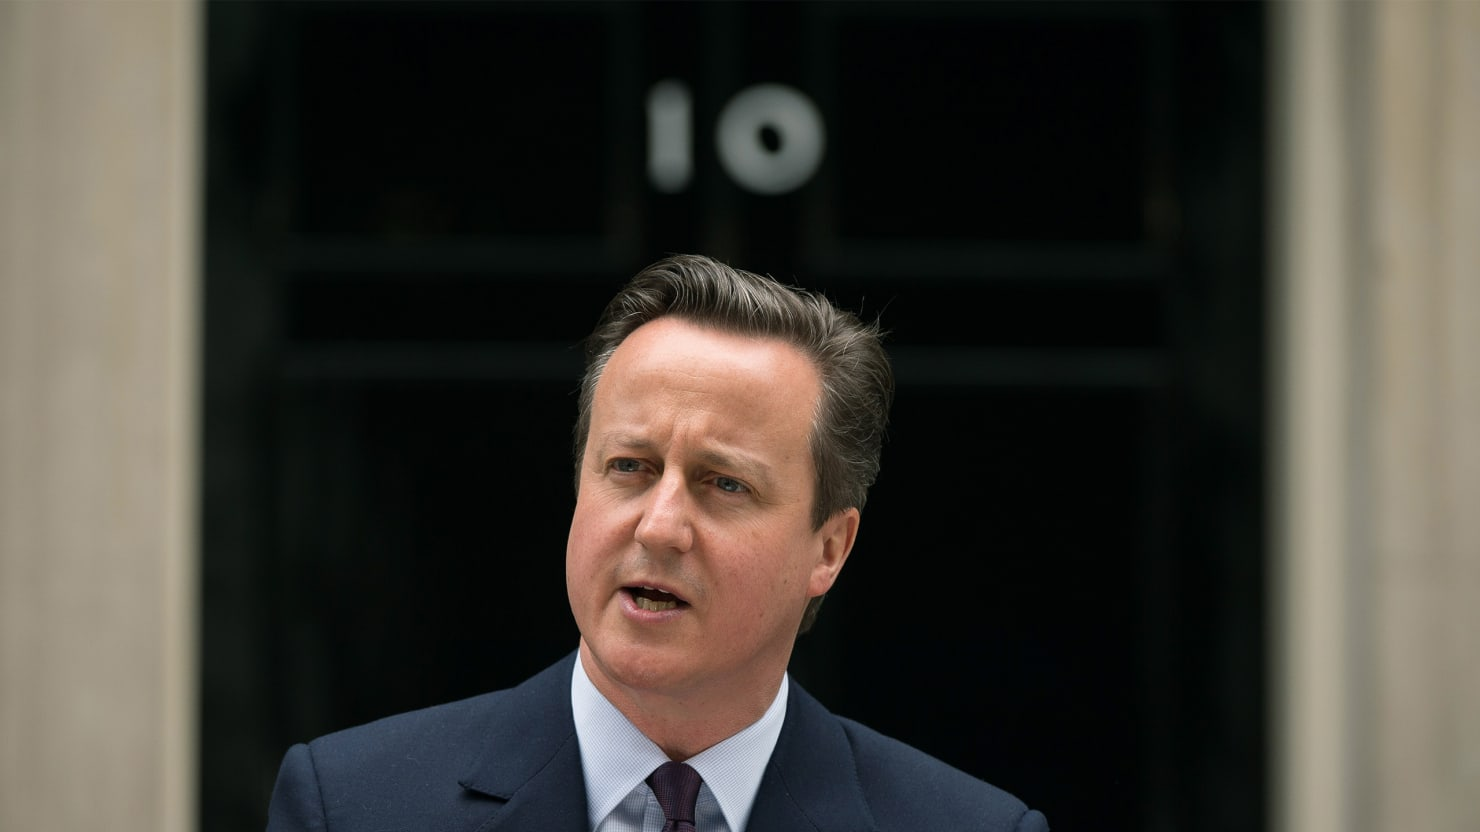 Is Cameron The UK's Last Prime Minister?